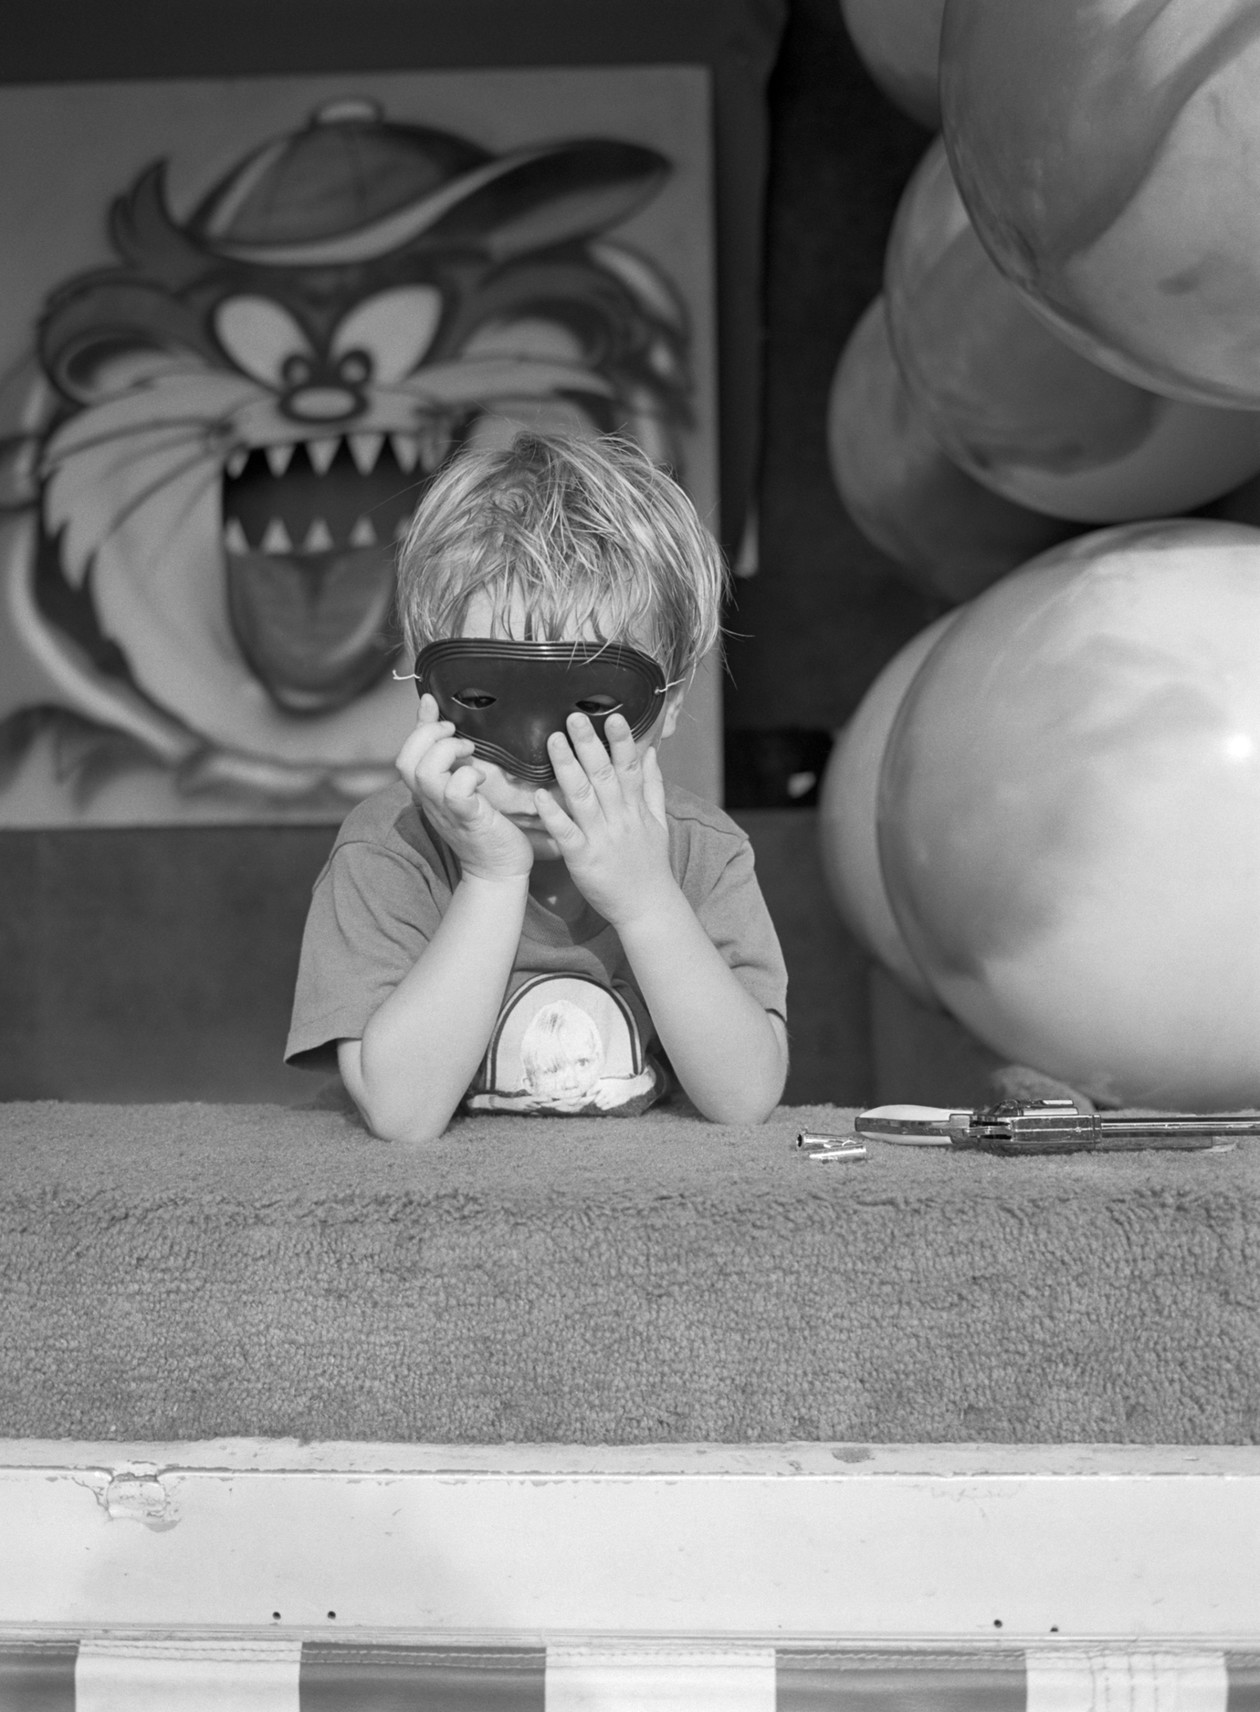 Untitled (masked boy), from Carnival (1995) by Mark Steinmetz